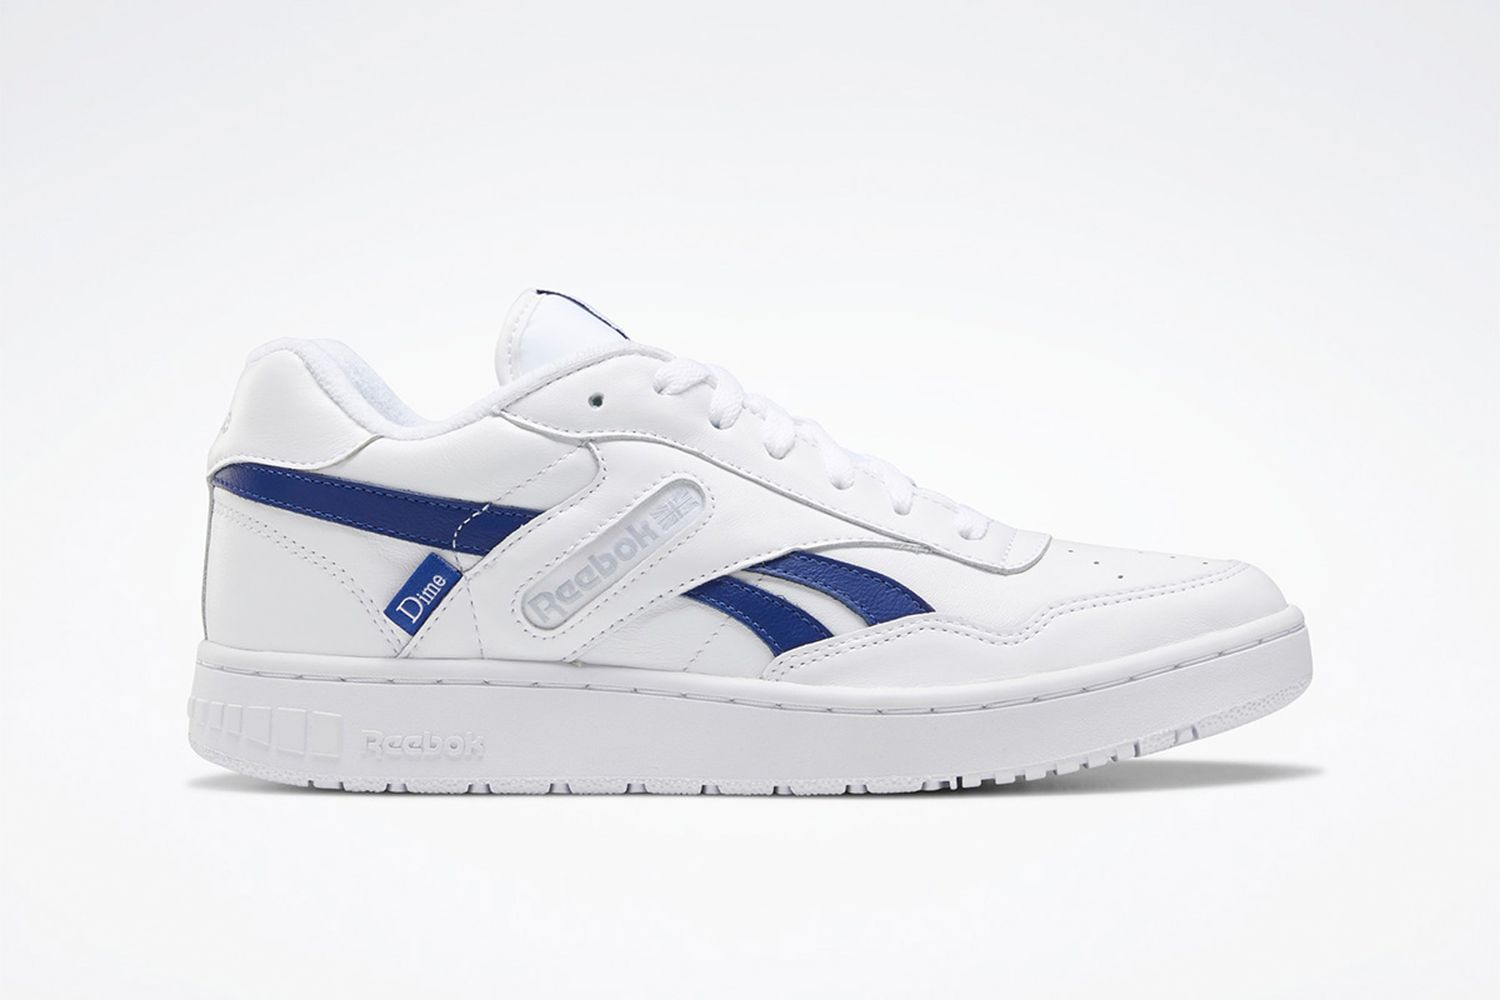 BB4000 Trainers